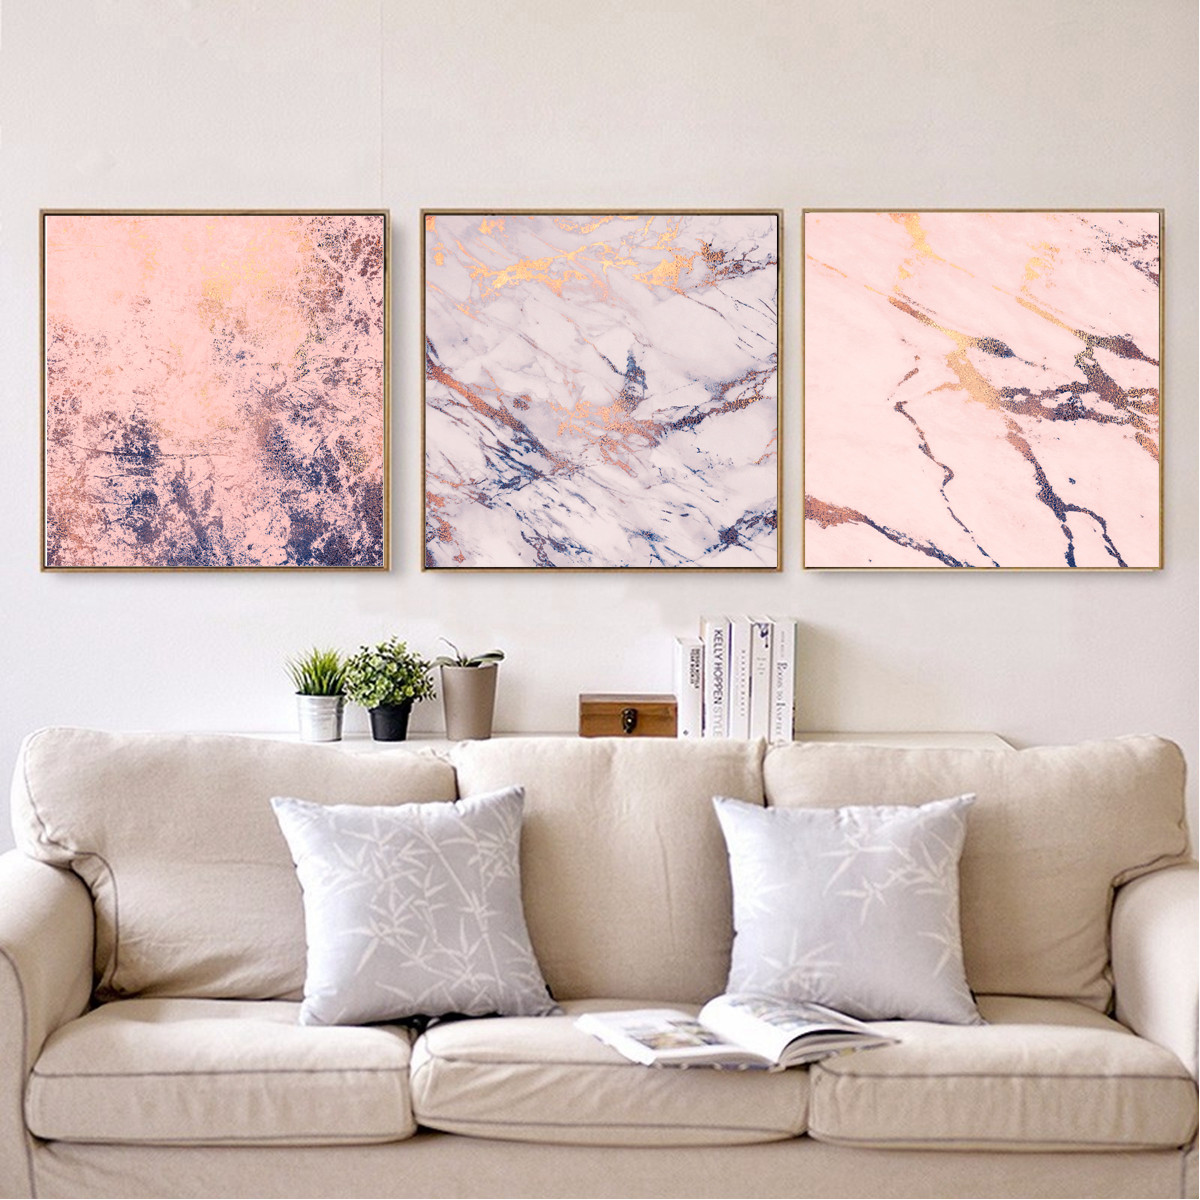 Modern Pink Marble Texture Abstract Poster Canvas Art Print Home Wall Decor Gift Ebay